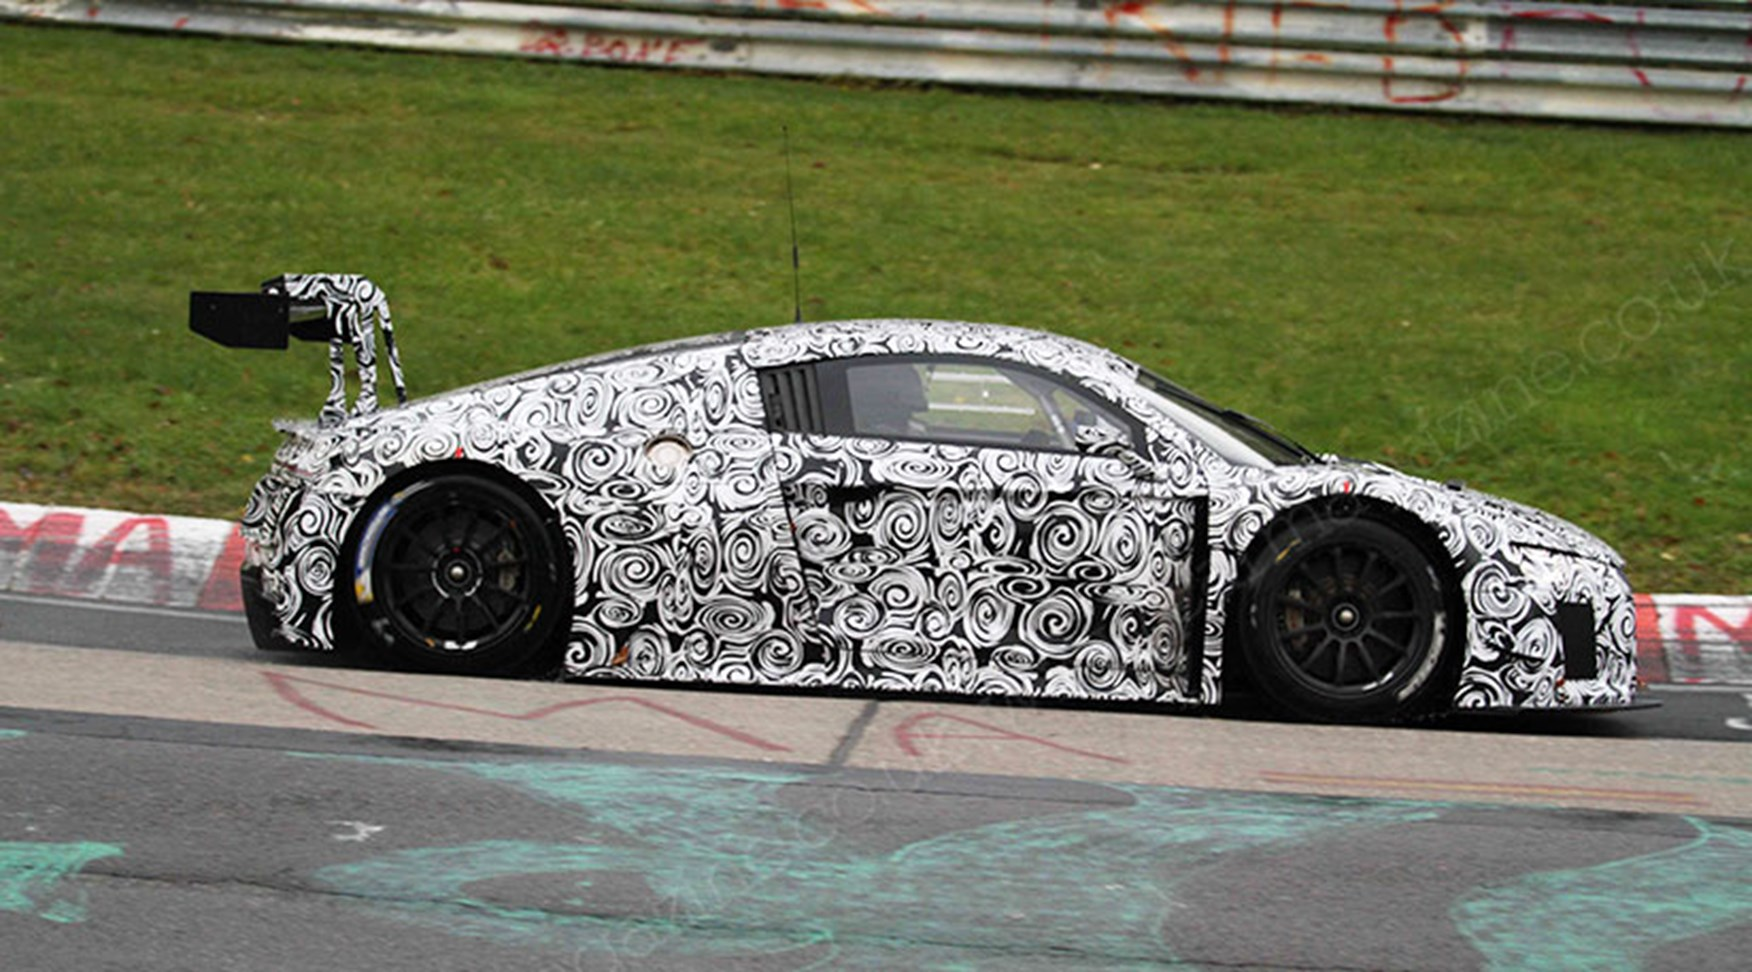 Audi R8 Gt3 Lms 2015 Spied On Test At The Ring By Car